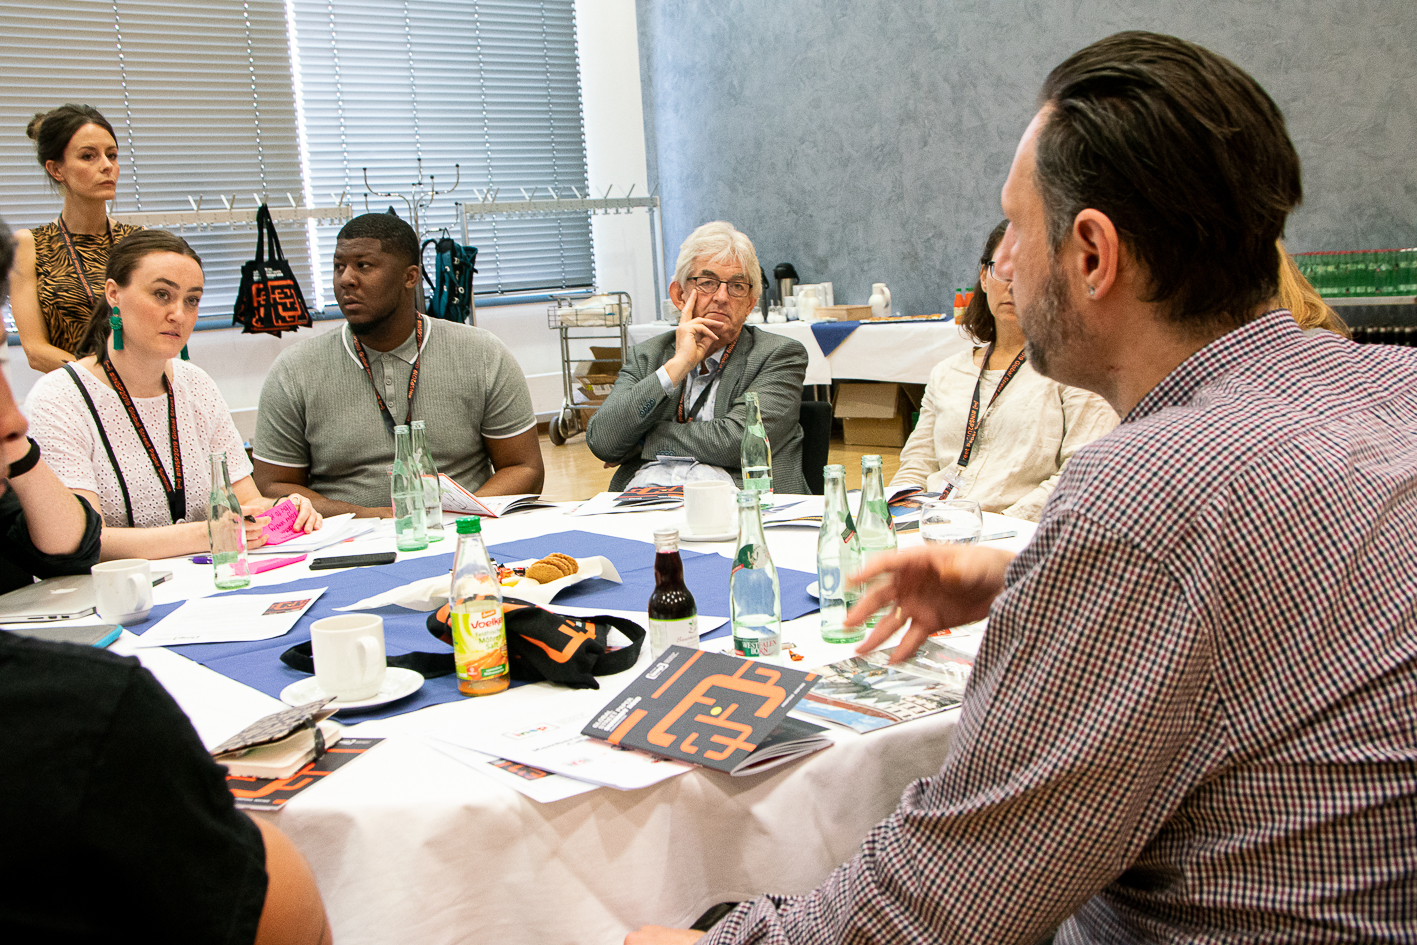 Just like old times: Mel Young participates in delegate discussions earlier in the day. (Credit: Andreas Fuchs)